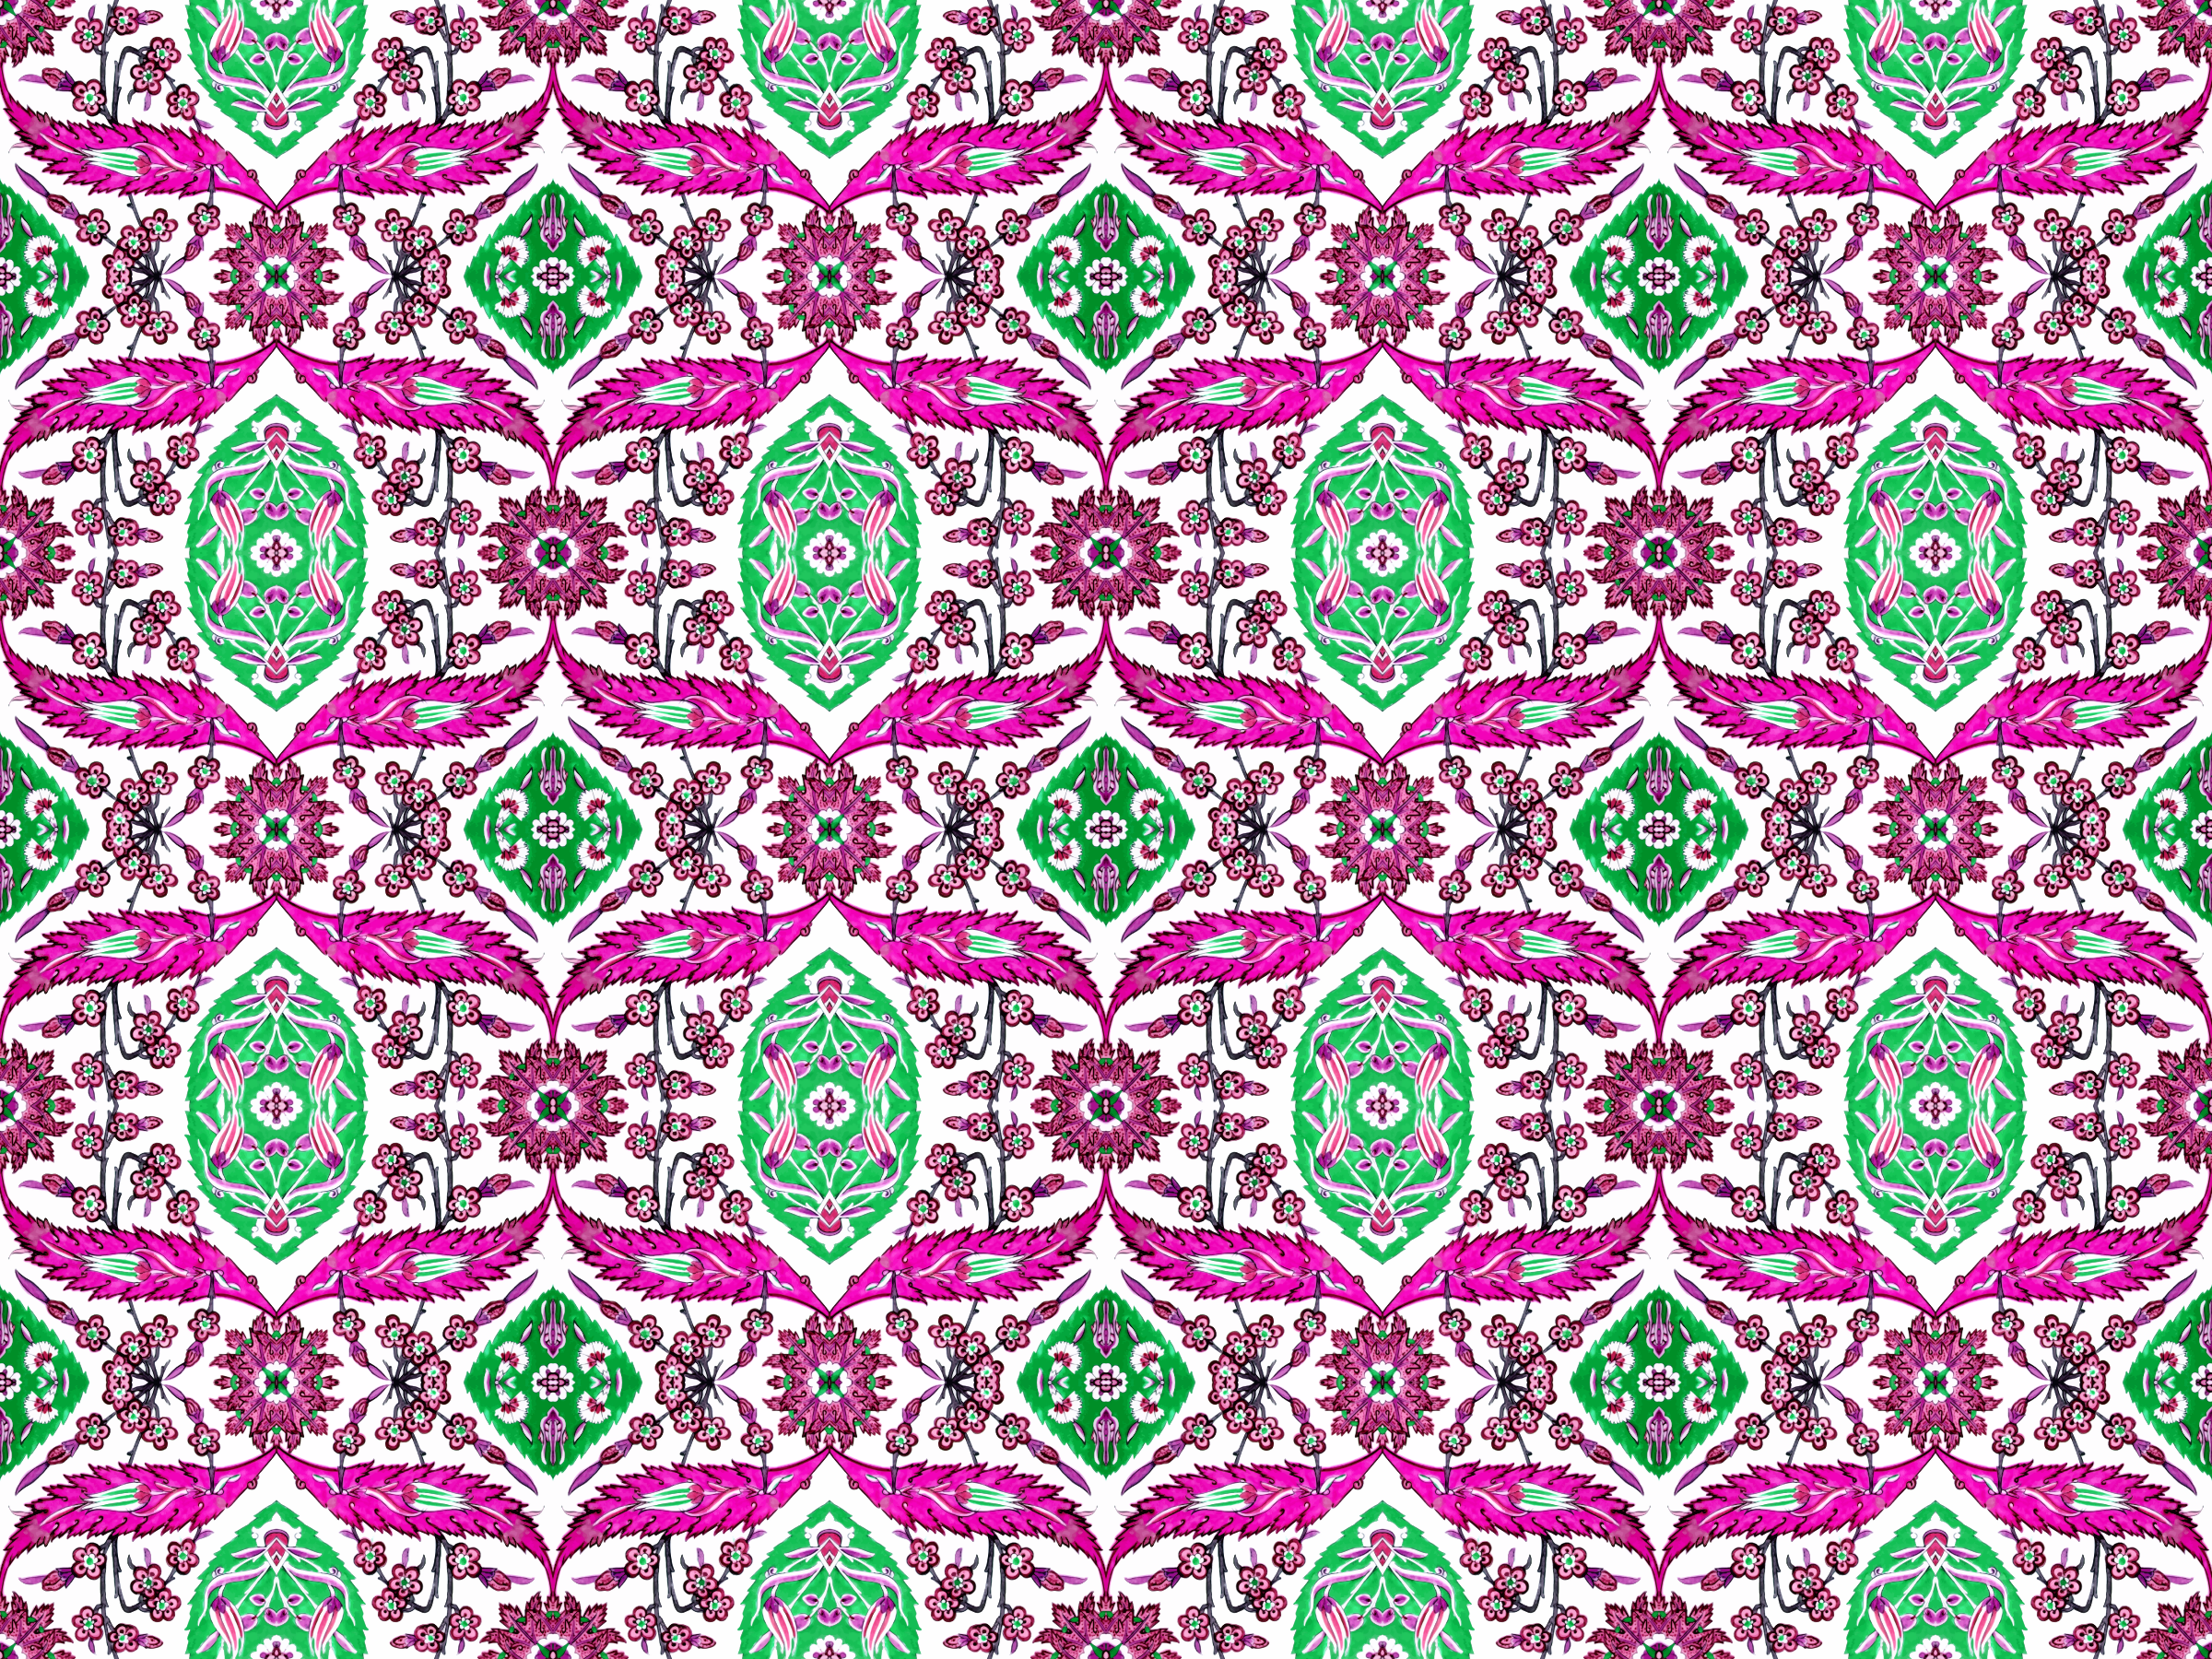 Floral pattern 6 (colour 2) by Firkin